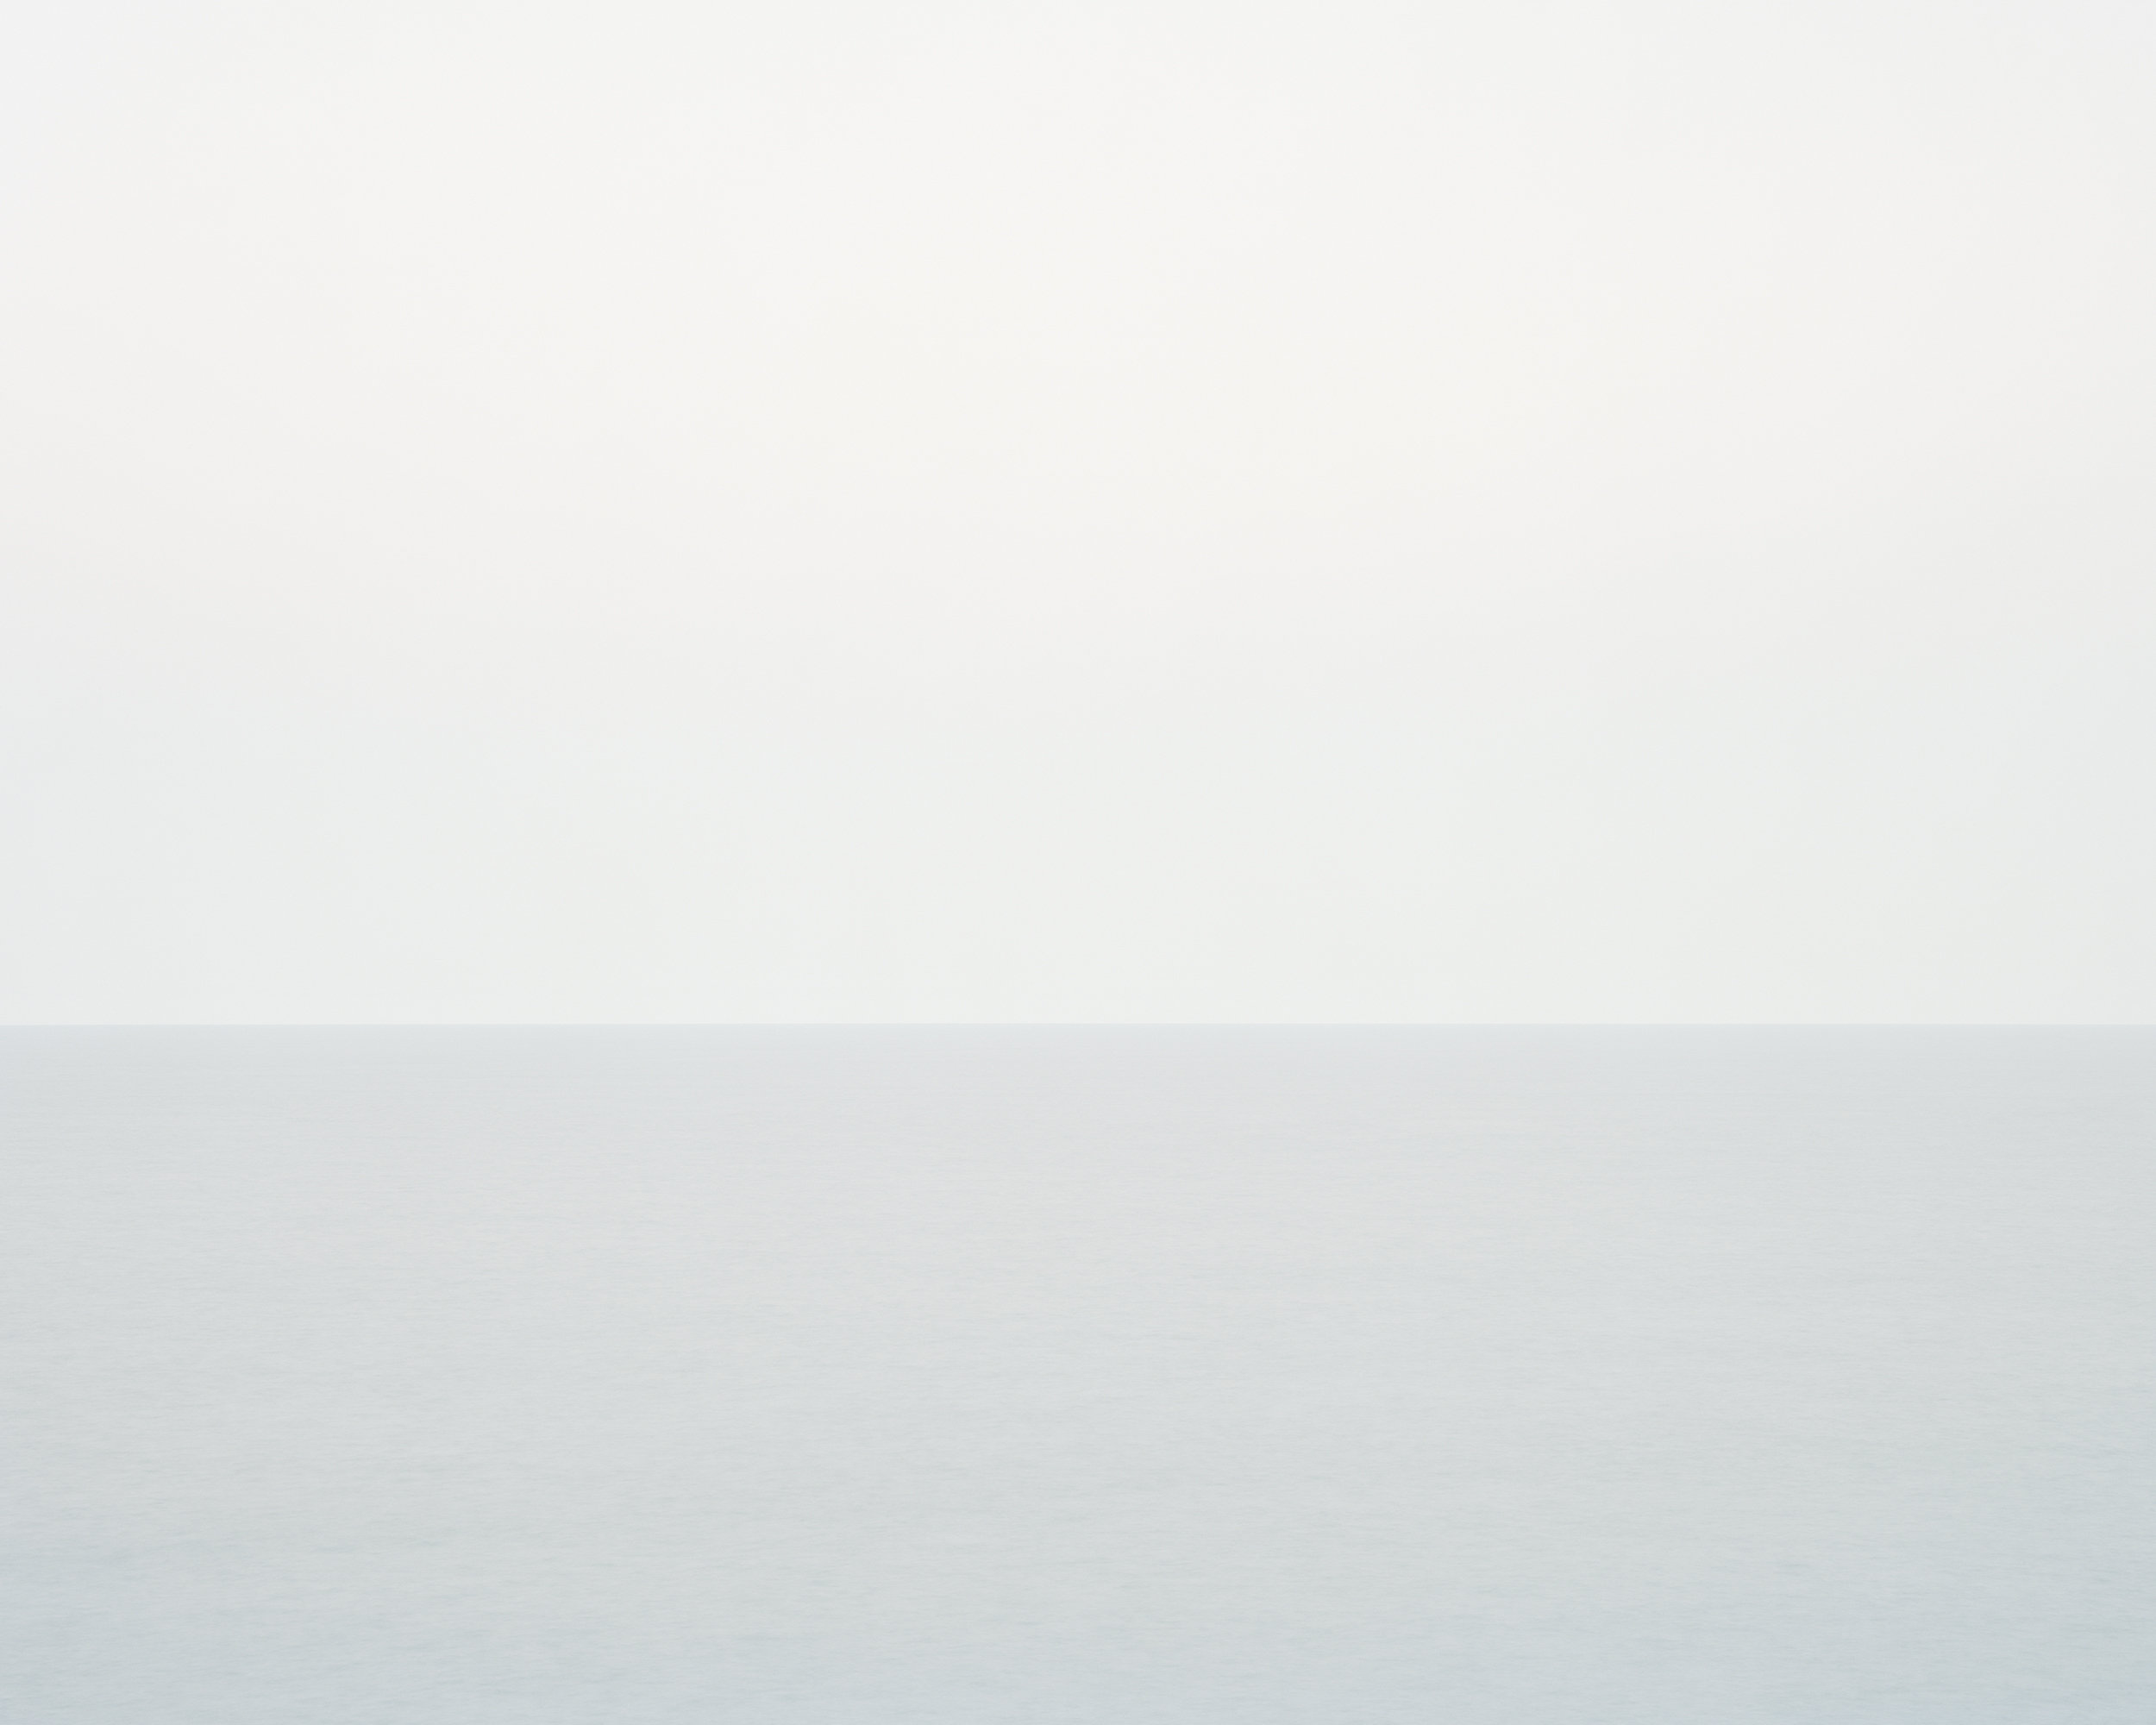 Untitled Seascape # 8 (white midday), The Gap, Vaucluse, Sydney, Australia, 2014.